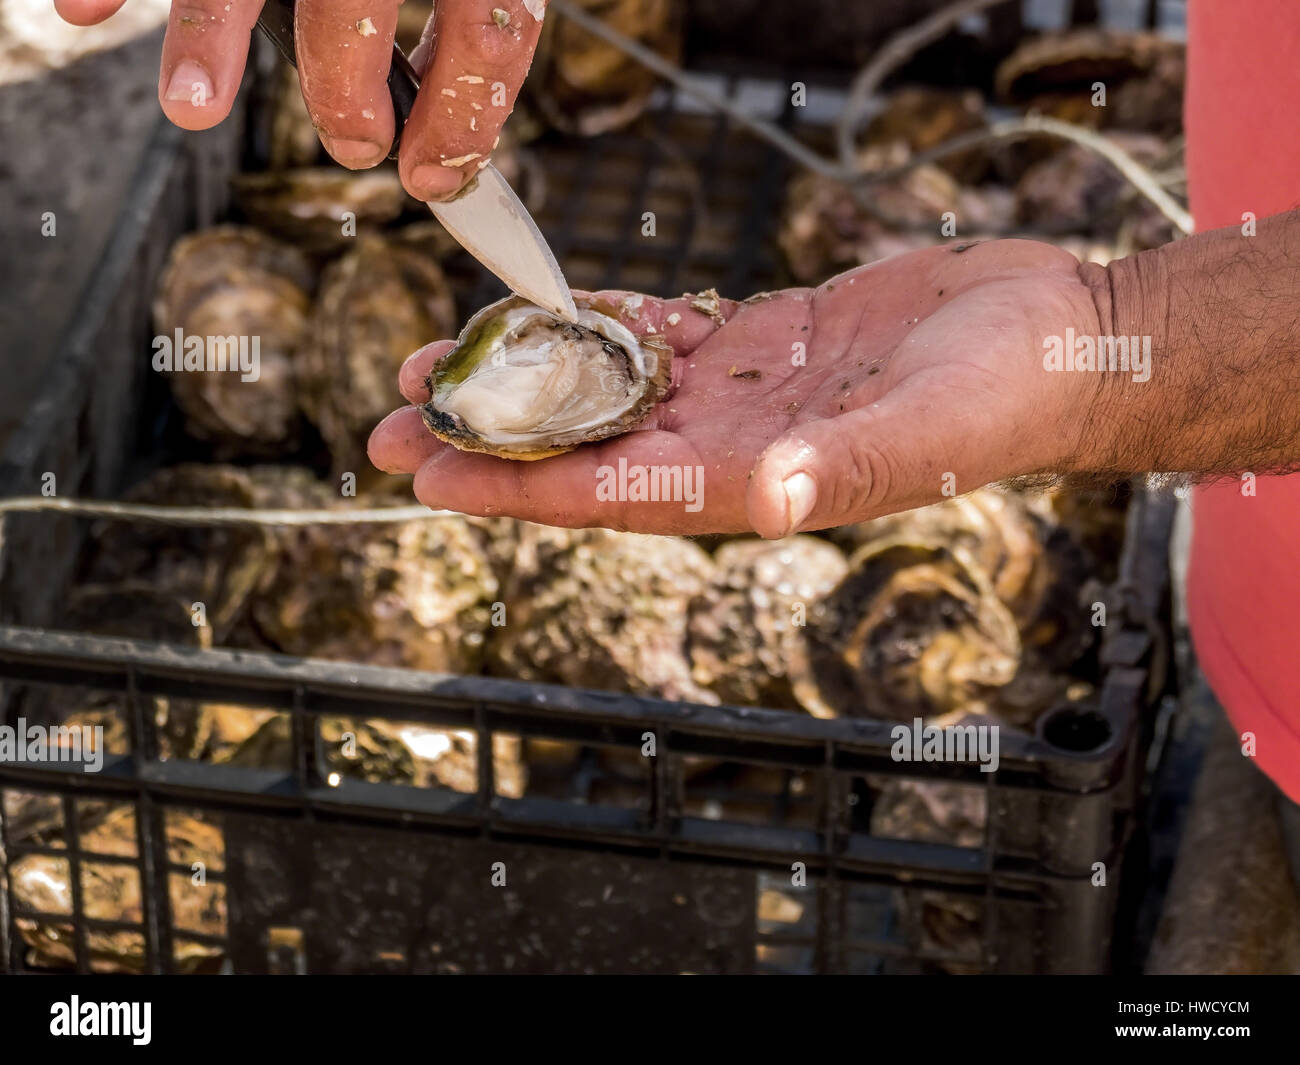 Oyster culture in Croatia, Austernzucht in Kroatien Stock Photo